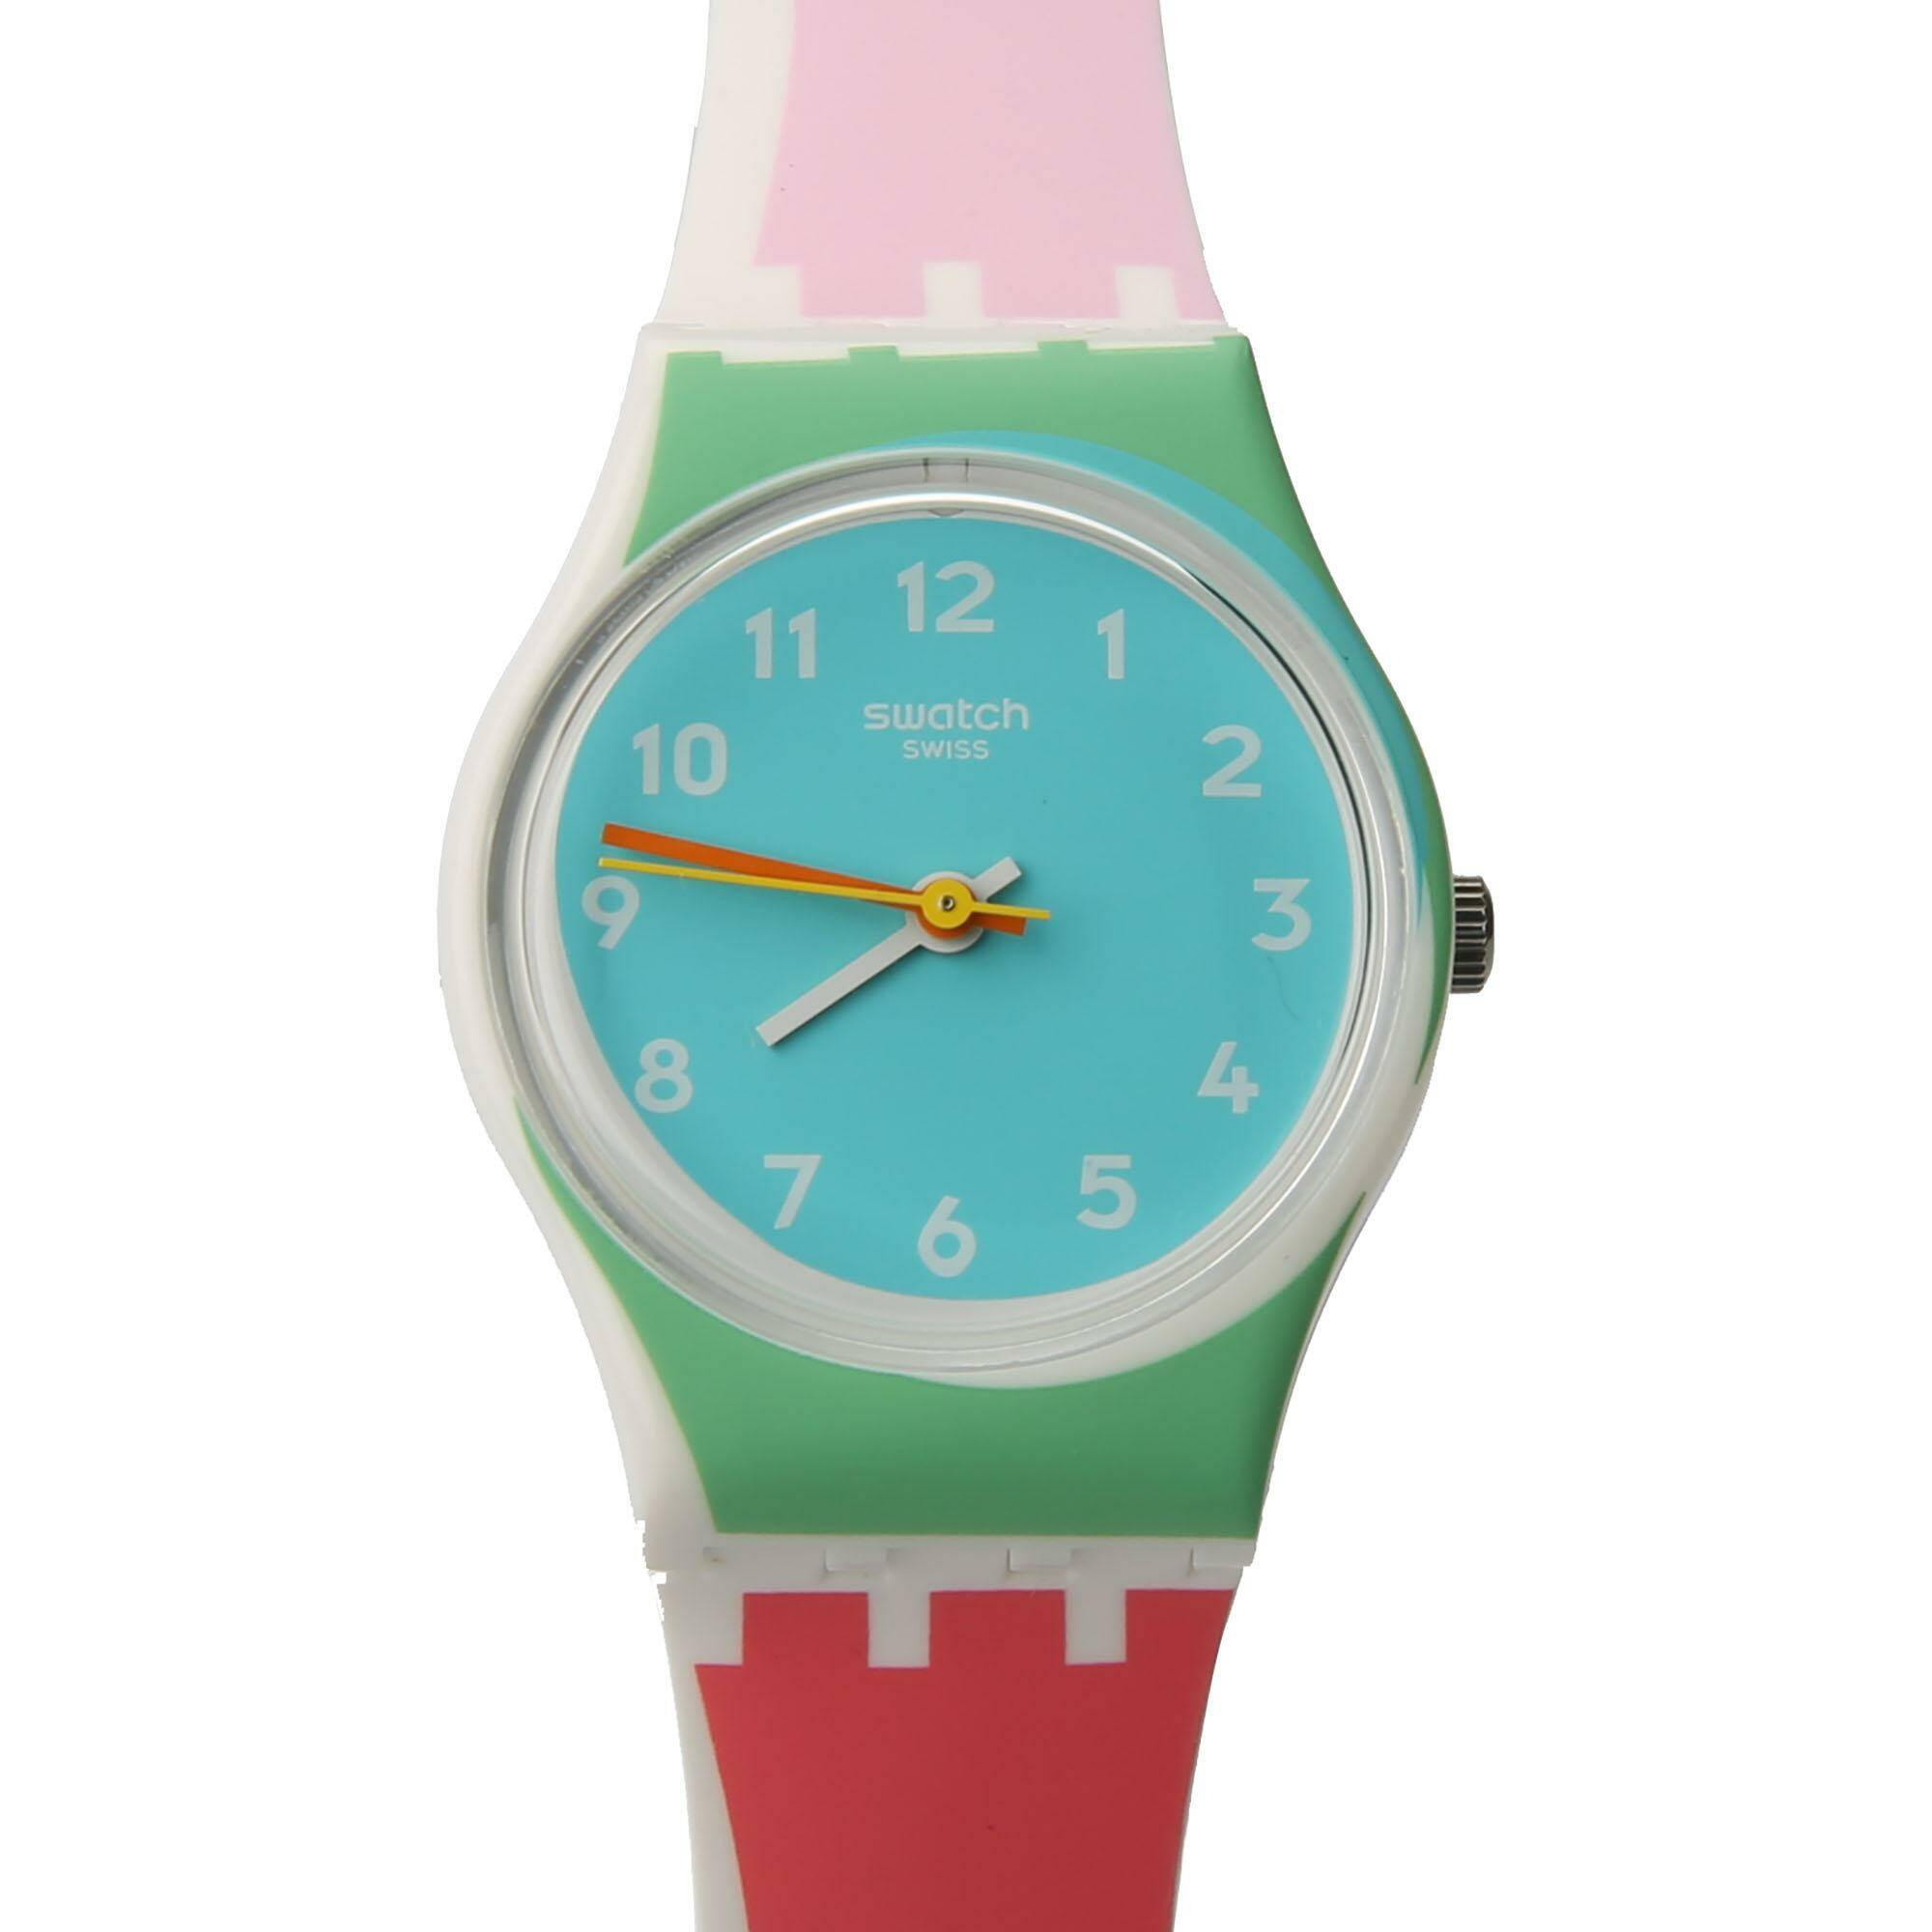 [SWATCH] DE TRAVERS